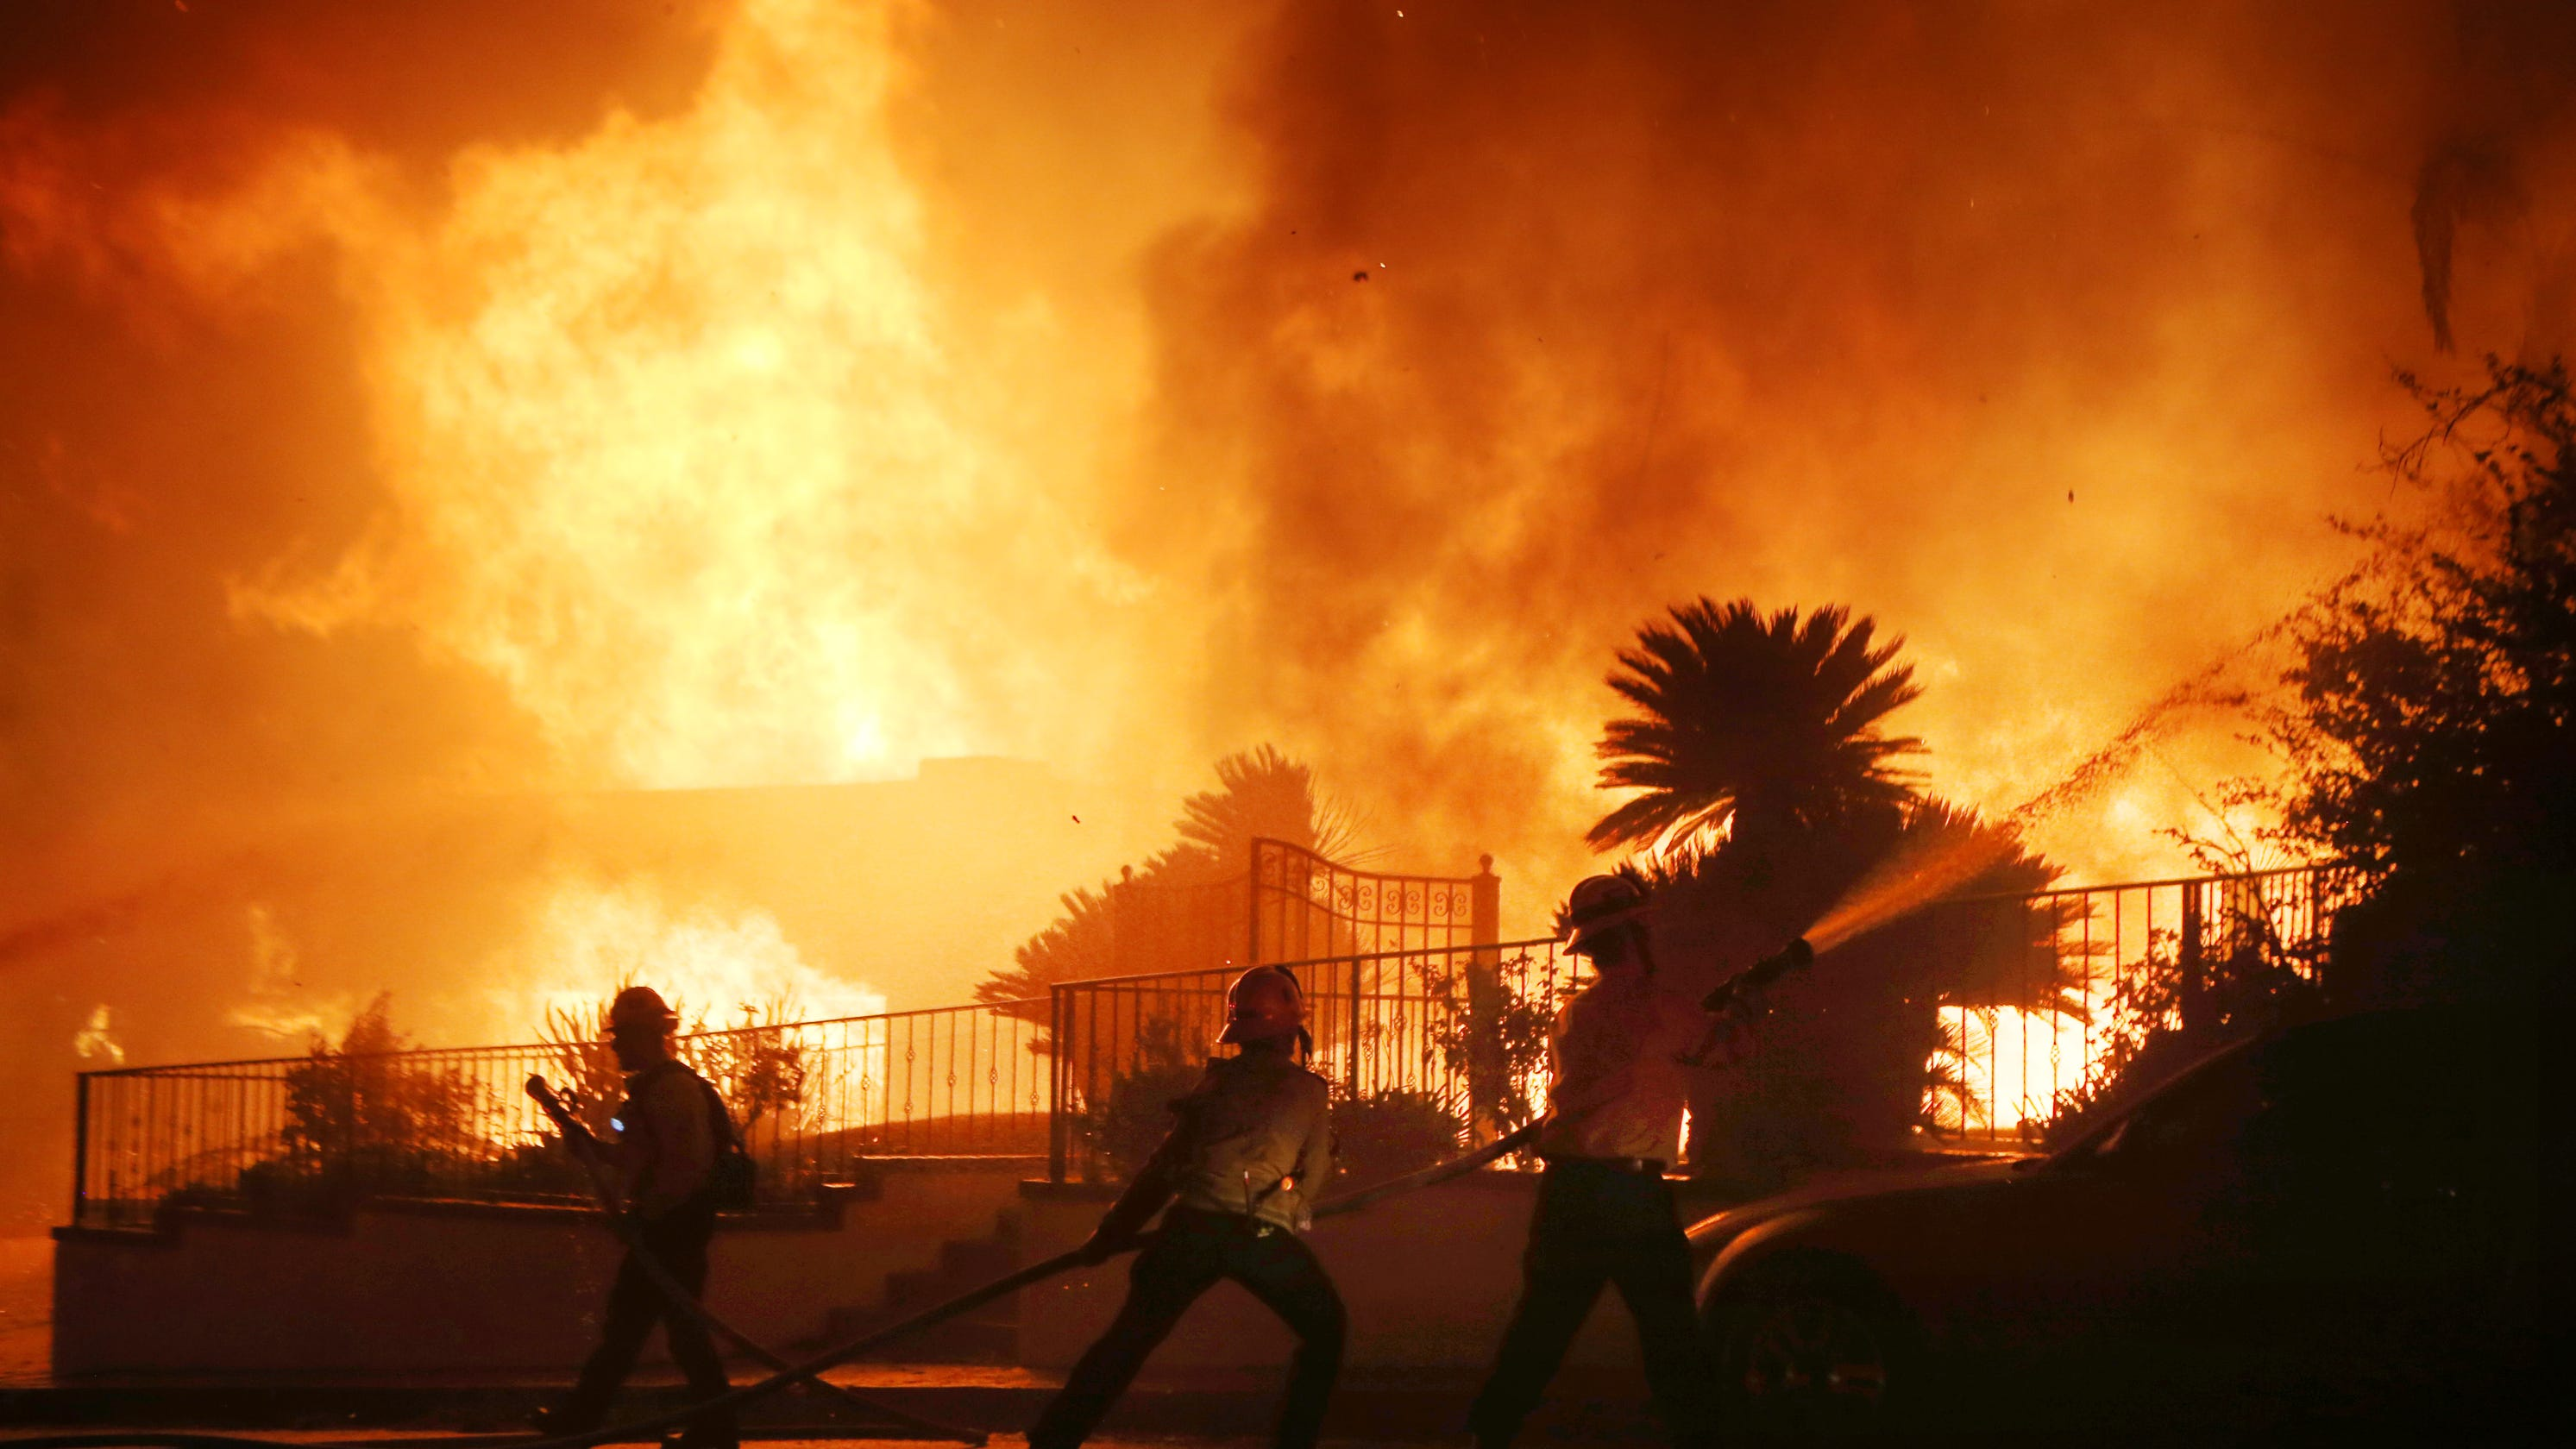 Evacuations lifted as Los Angeles fire threat eases; 2 confirmed slow in Sandalwood blaze thumbnail